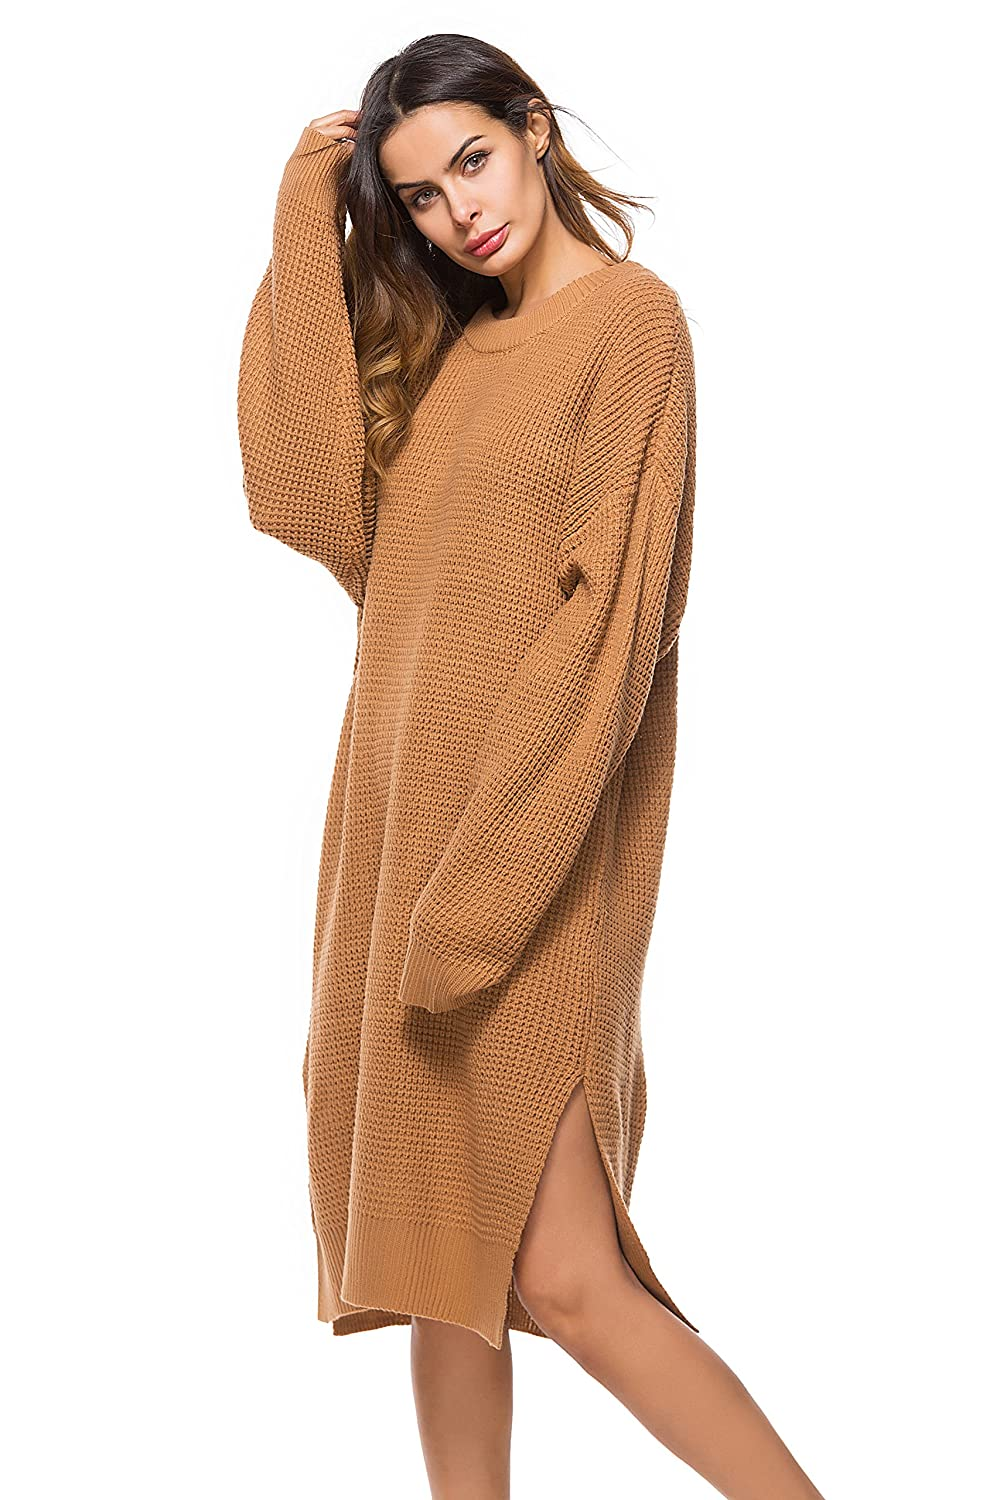 97533542b3d Mingnos Women s Plus Size Crewneck Long Baggy Chunky Knit Pullover Sweater  Dress  Amazon.ca  Clothing   Accessories